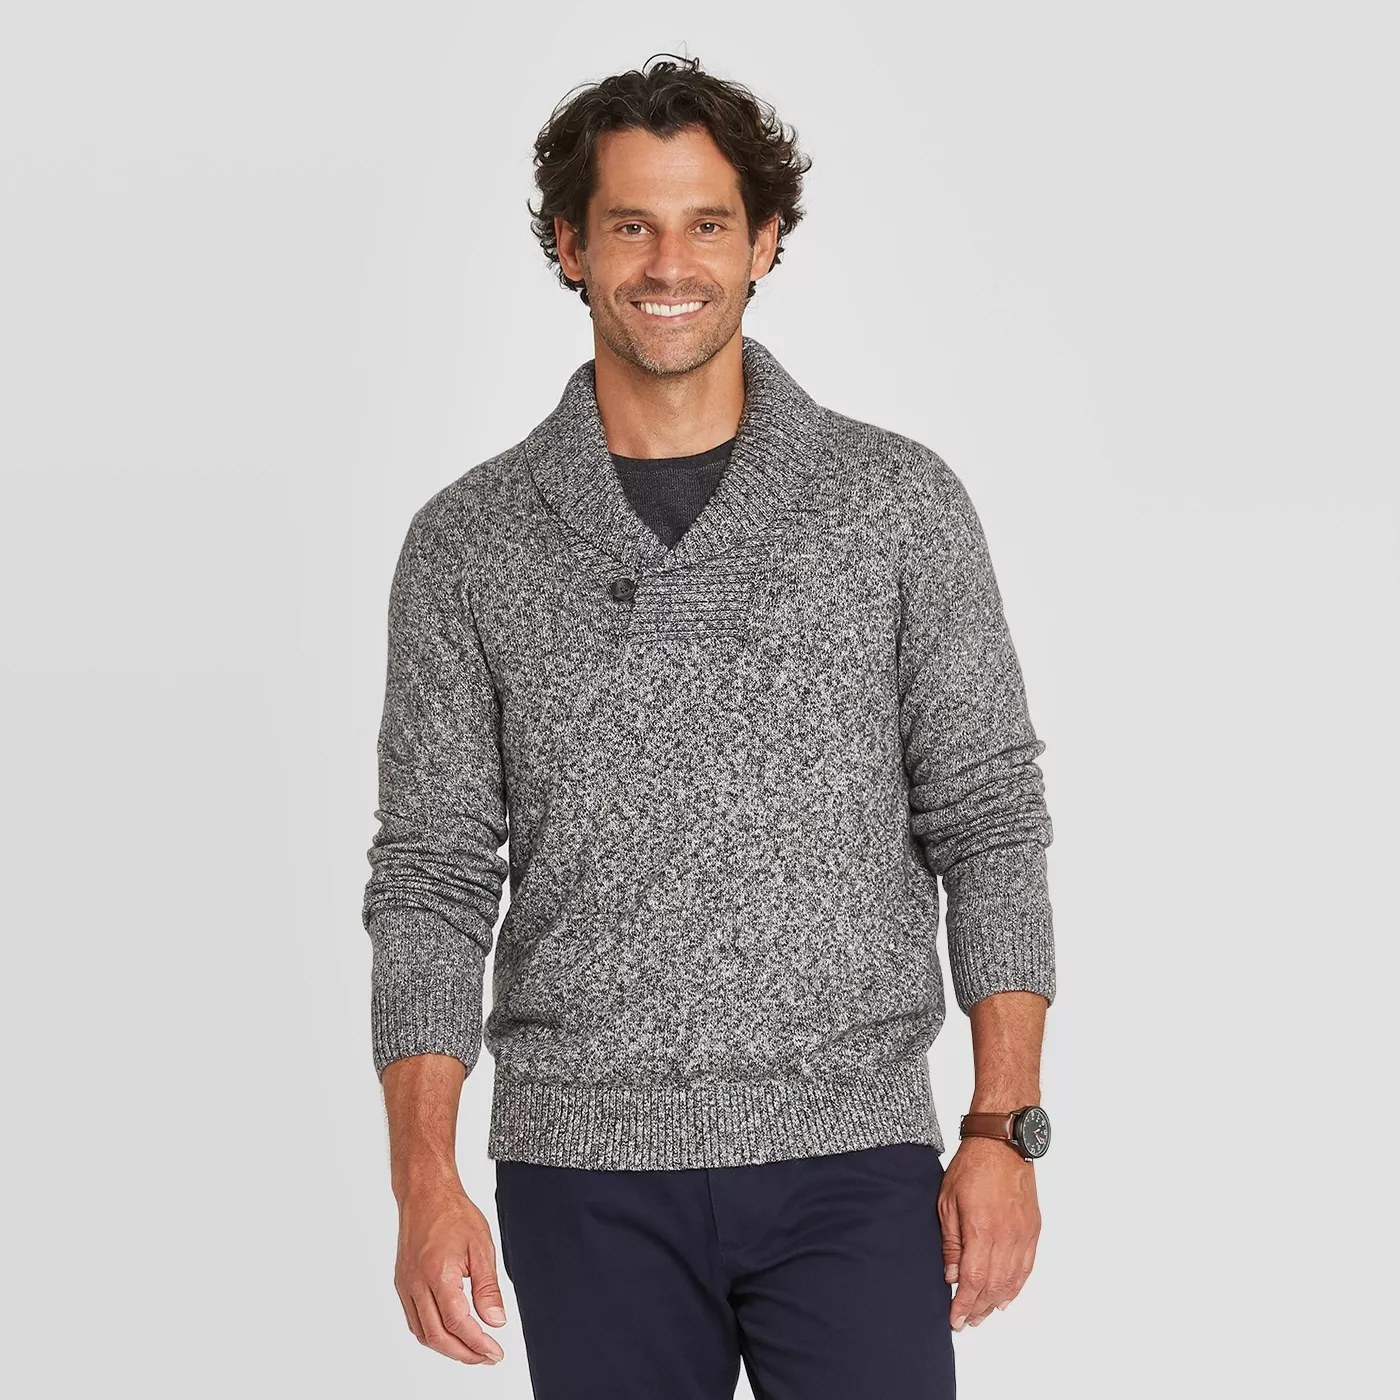 The sweater in gray